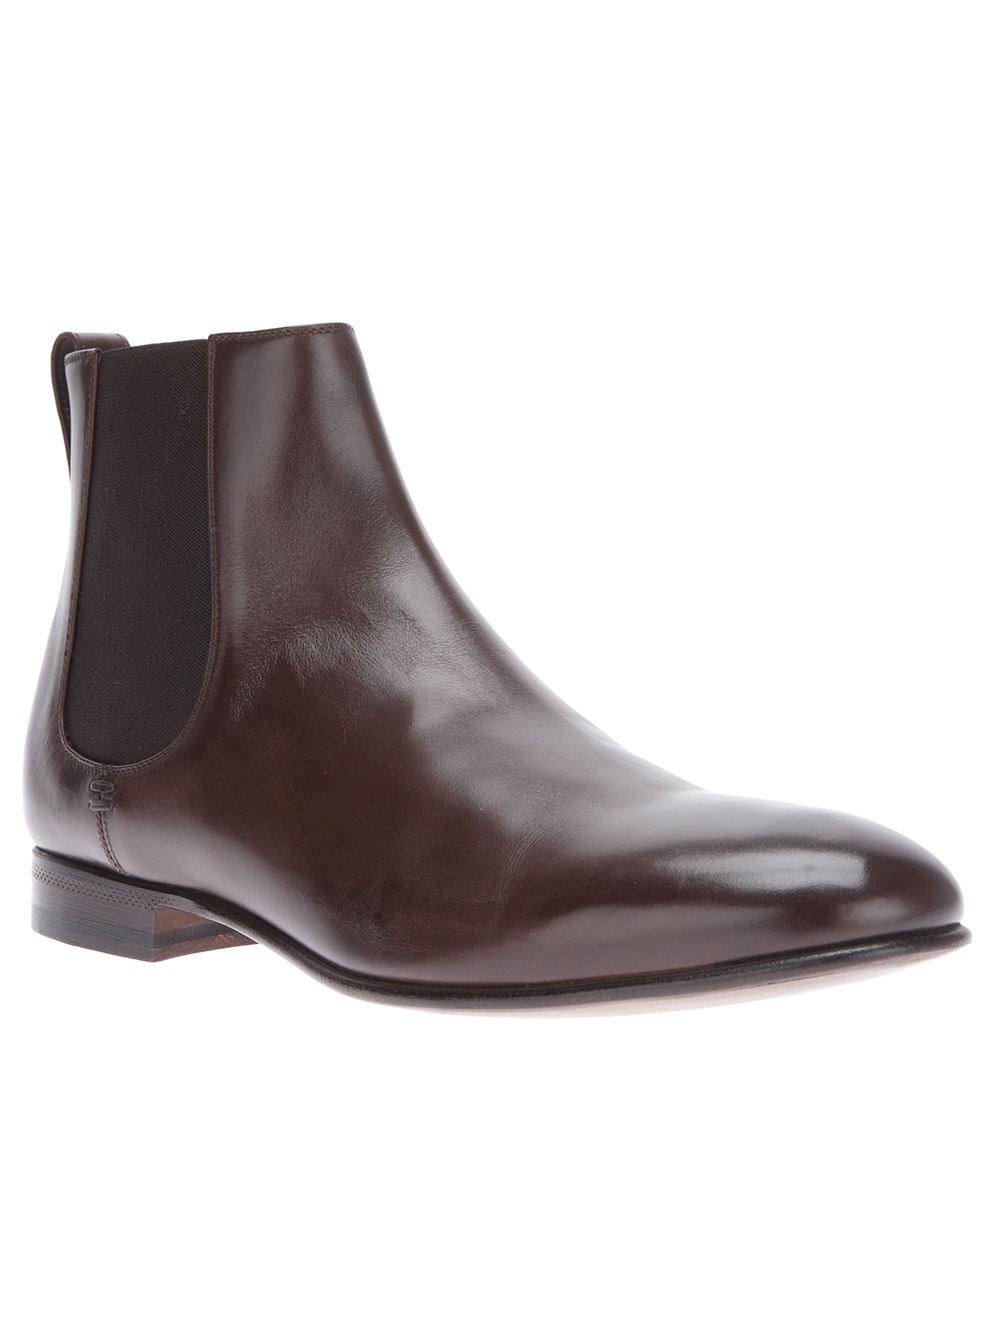 lyst sergio rossi ankle boot in brown for men. Black Bedroom Furniture Sets. Home Design Ideas